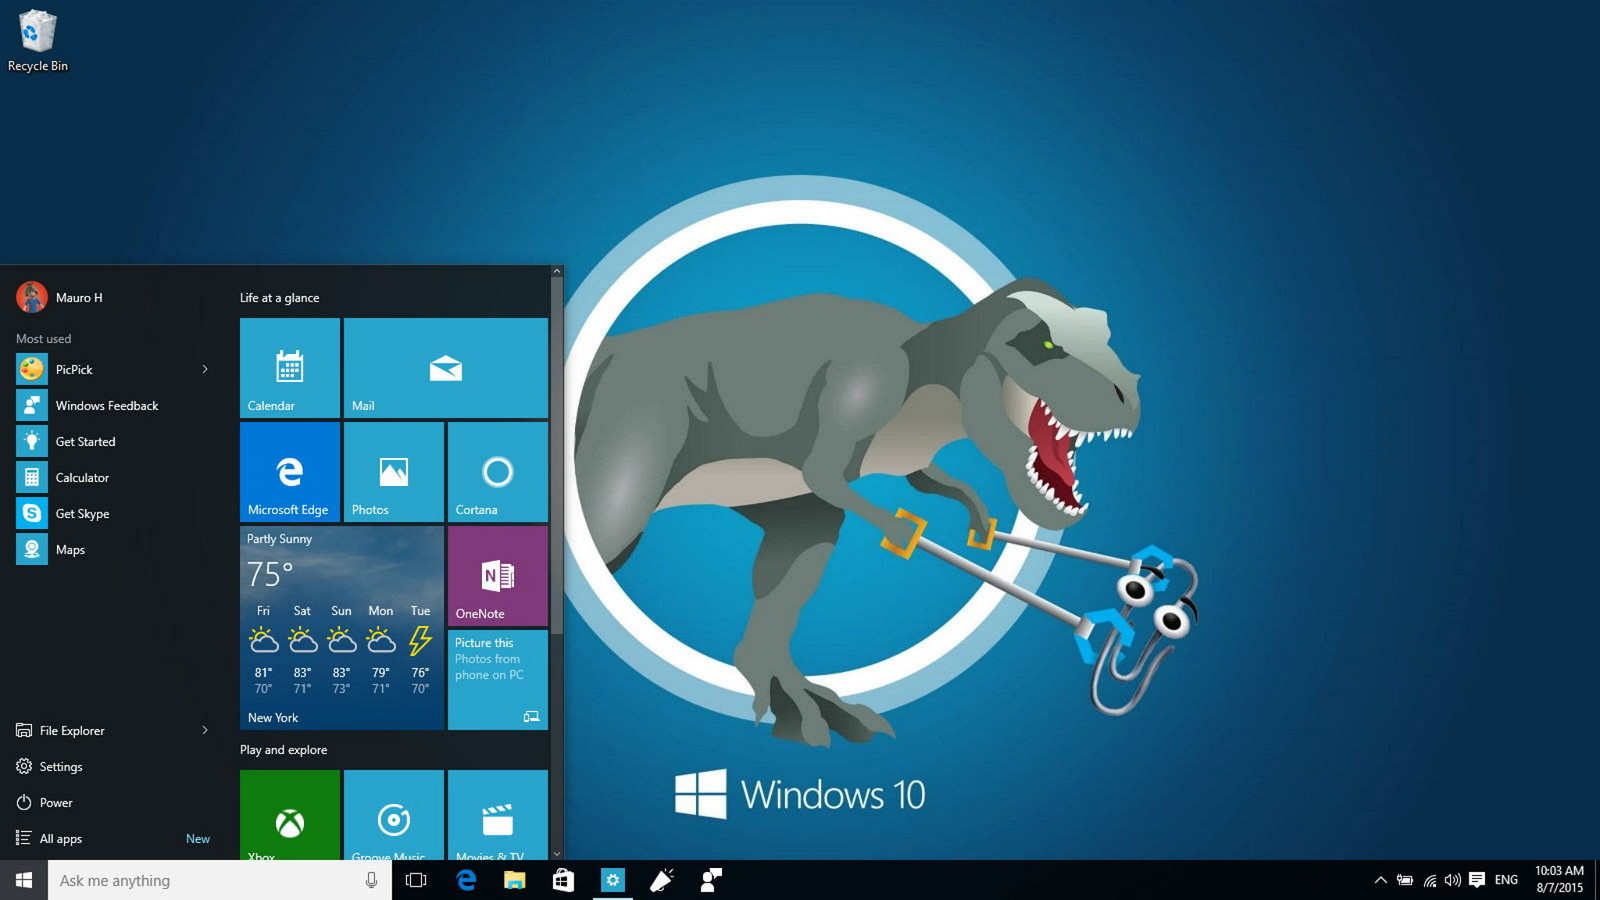 Windows 10 is causing problems for those forced to update